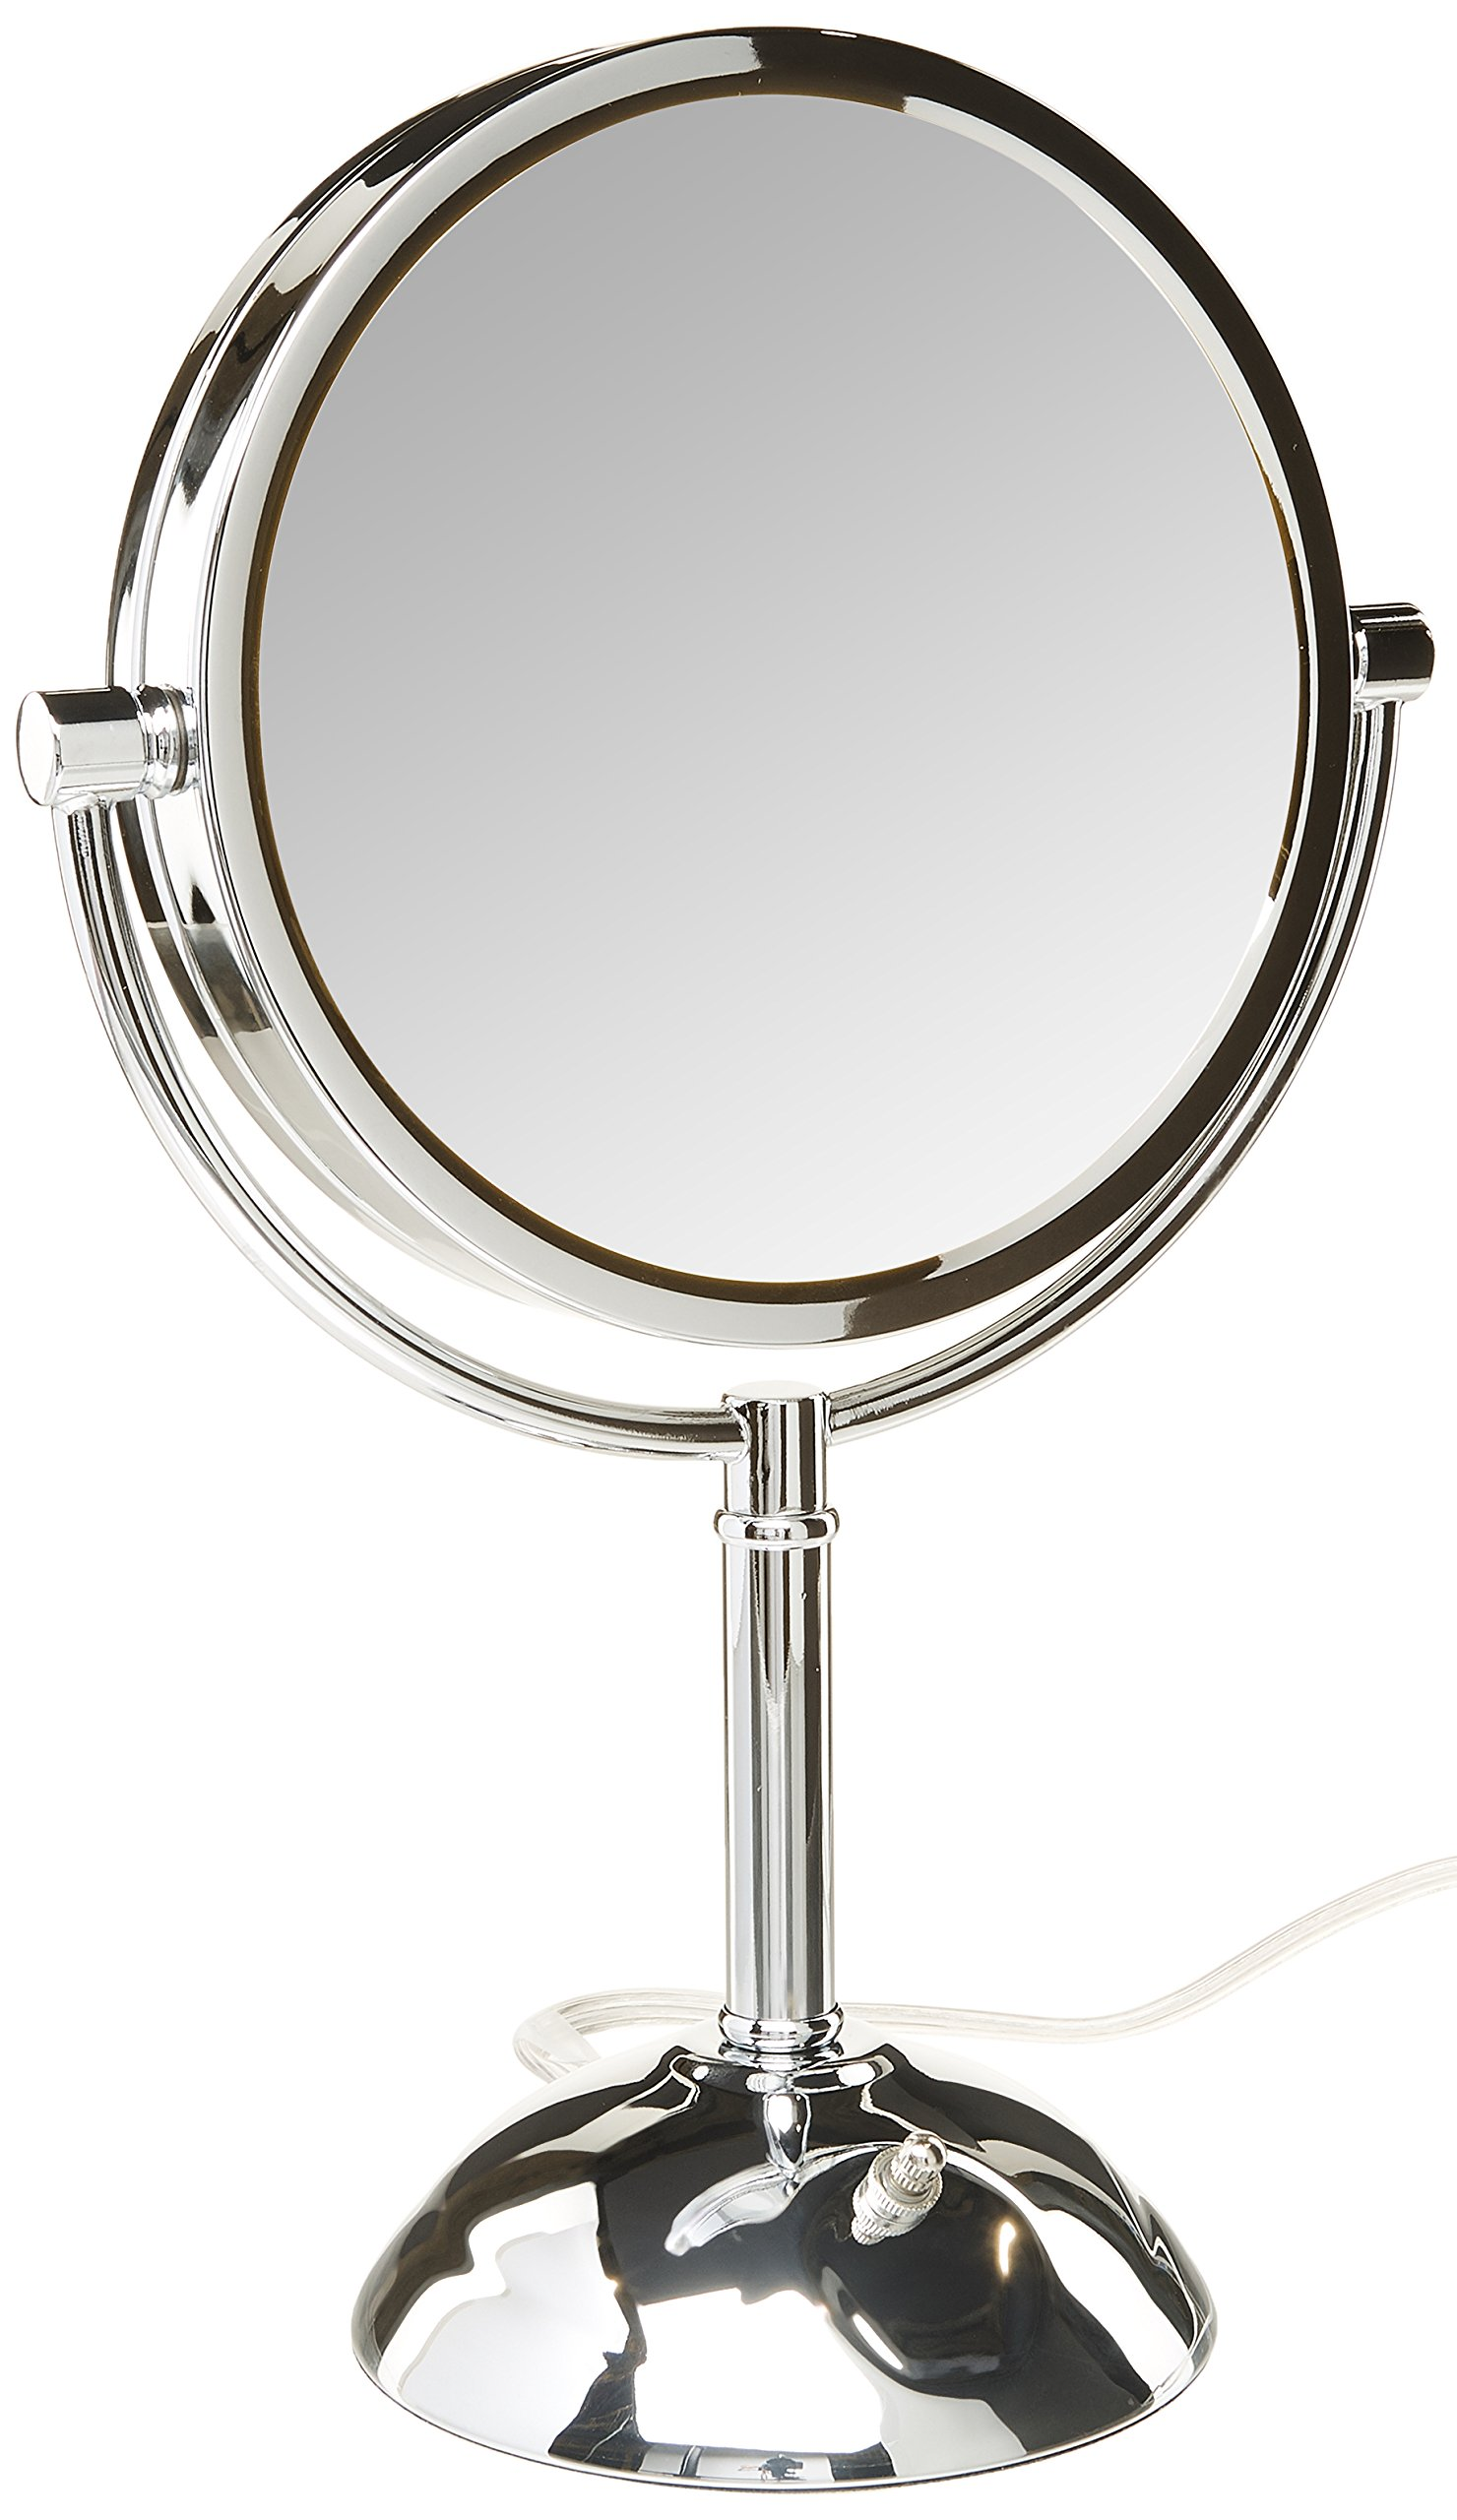 Jerdon HL8808CL 8.5-Inch Tabletop Two-Sided Swivel LED Lighted Vanity Mirror with 8x Magnification, 3-Light Settings, Chrome Finish by Jerdon